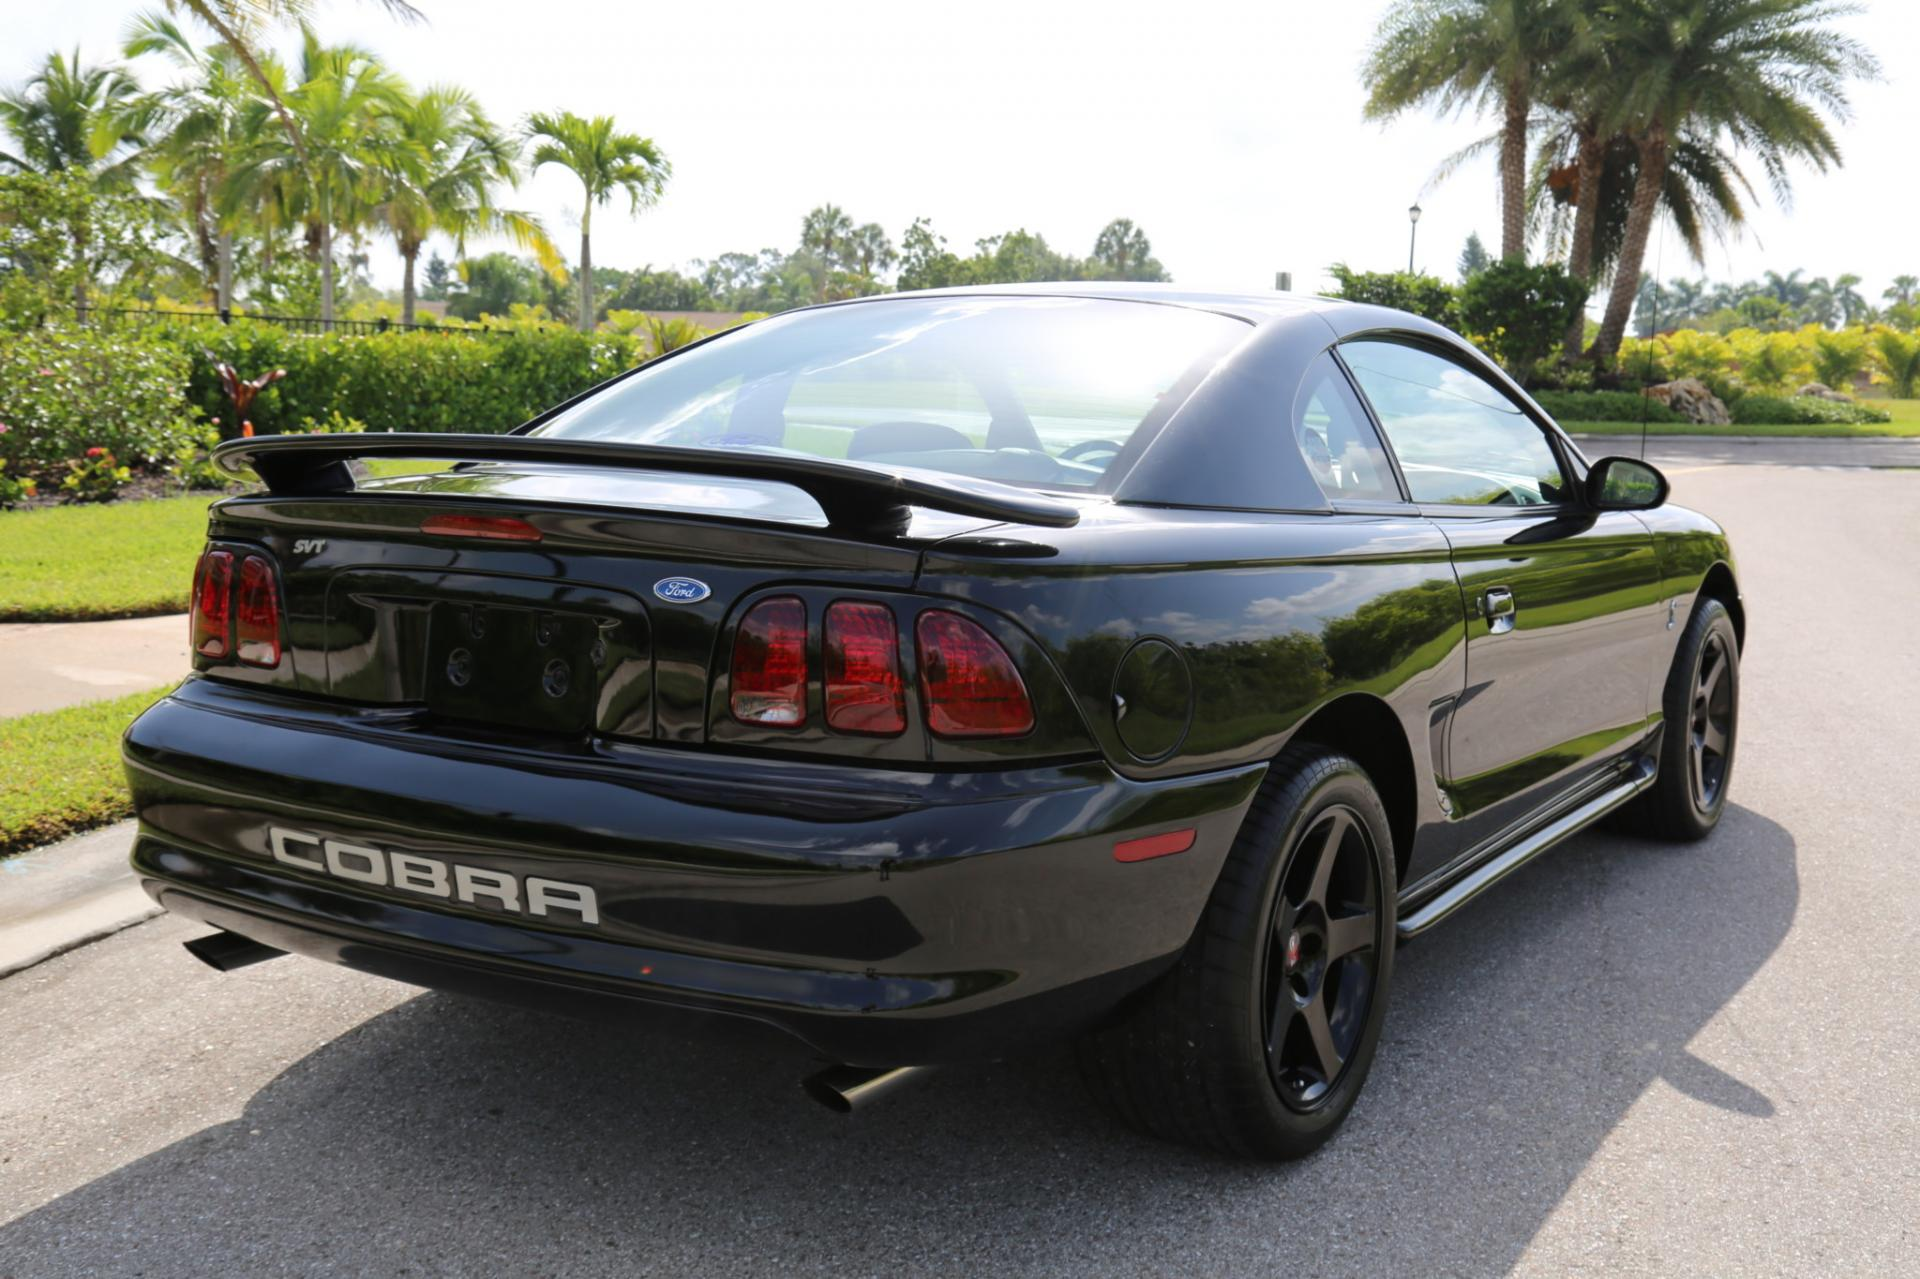 Used 1996 Mustang  Cobra SVT for sale $24,000 at Muscle Cars for Sale Inc. in Fort Myers FL 33912 5